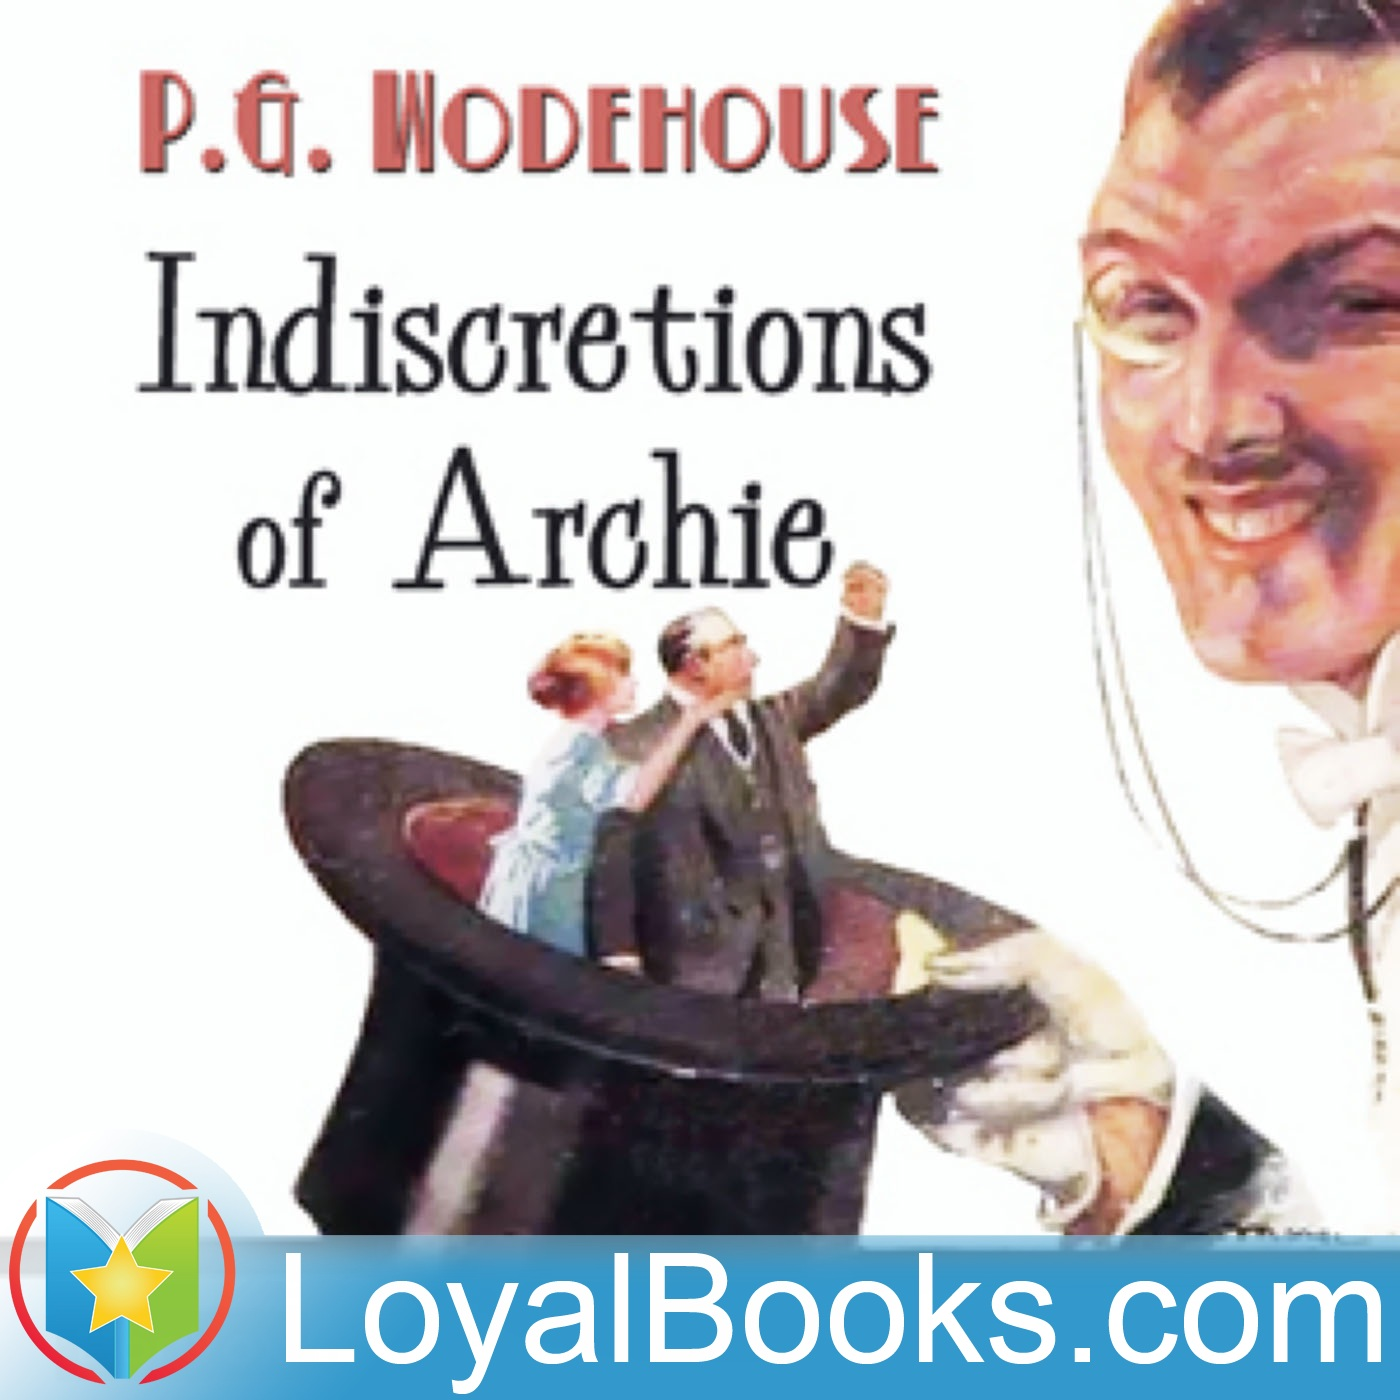 <![CDATA[Indiscretions of Archie by P. G. Wodehouse]]>